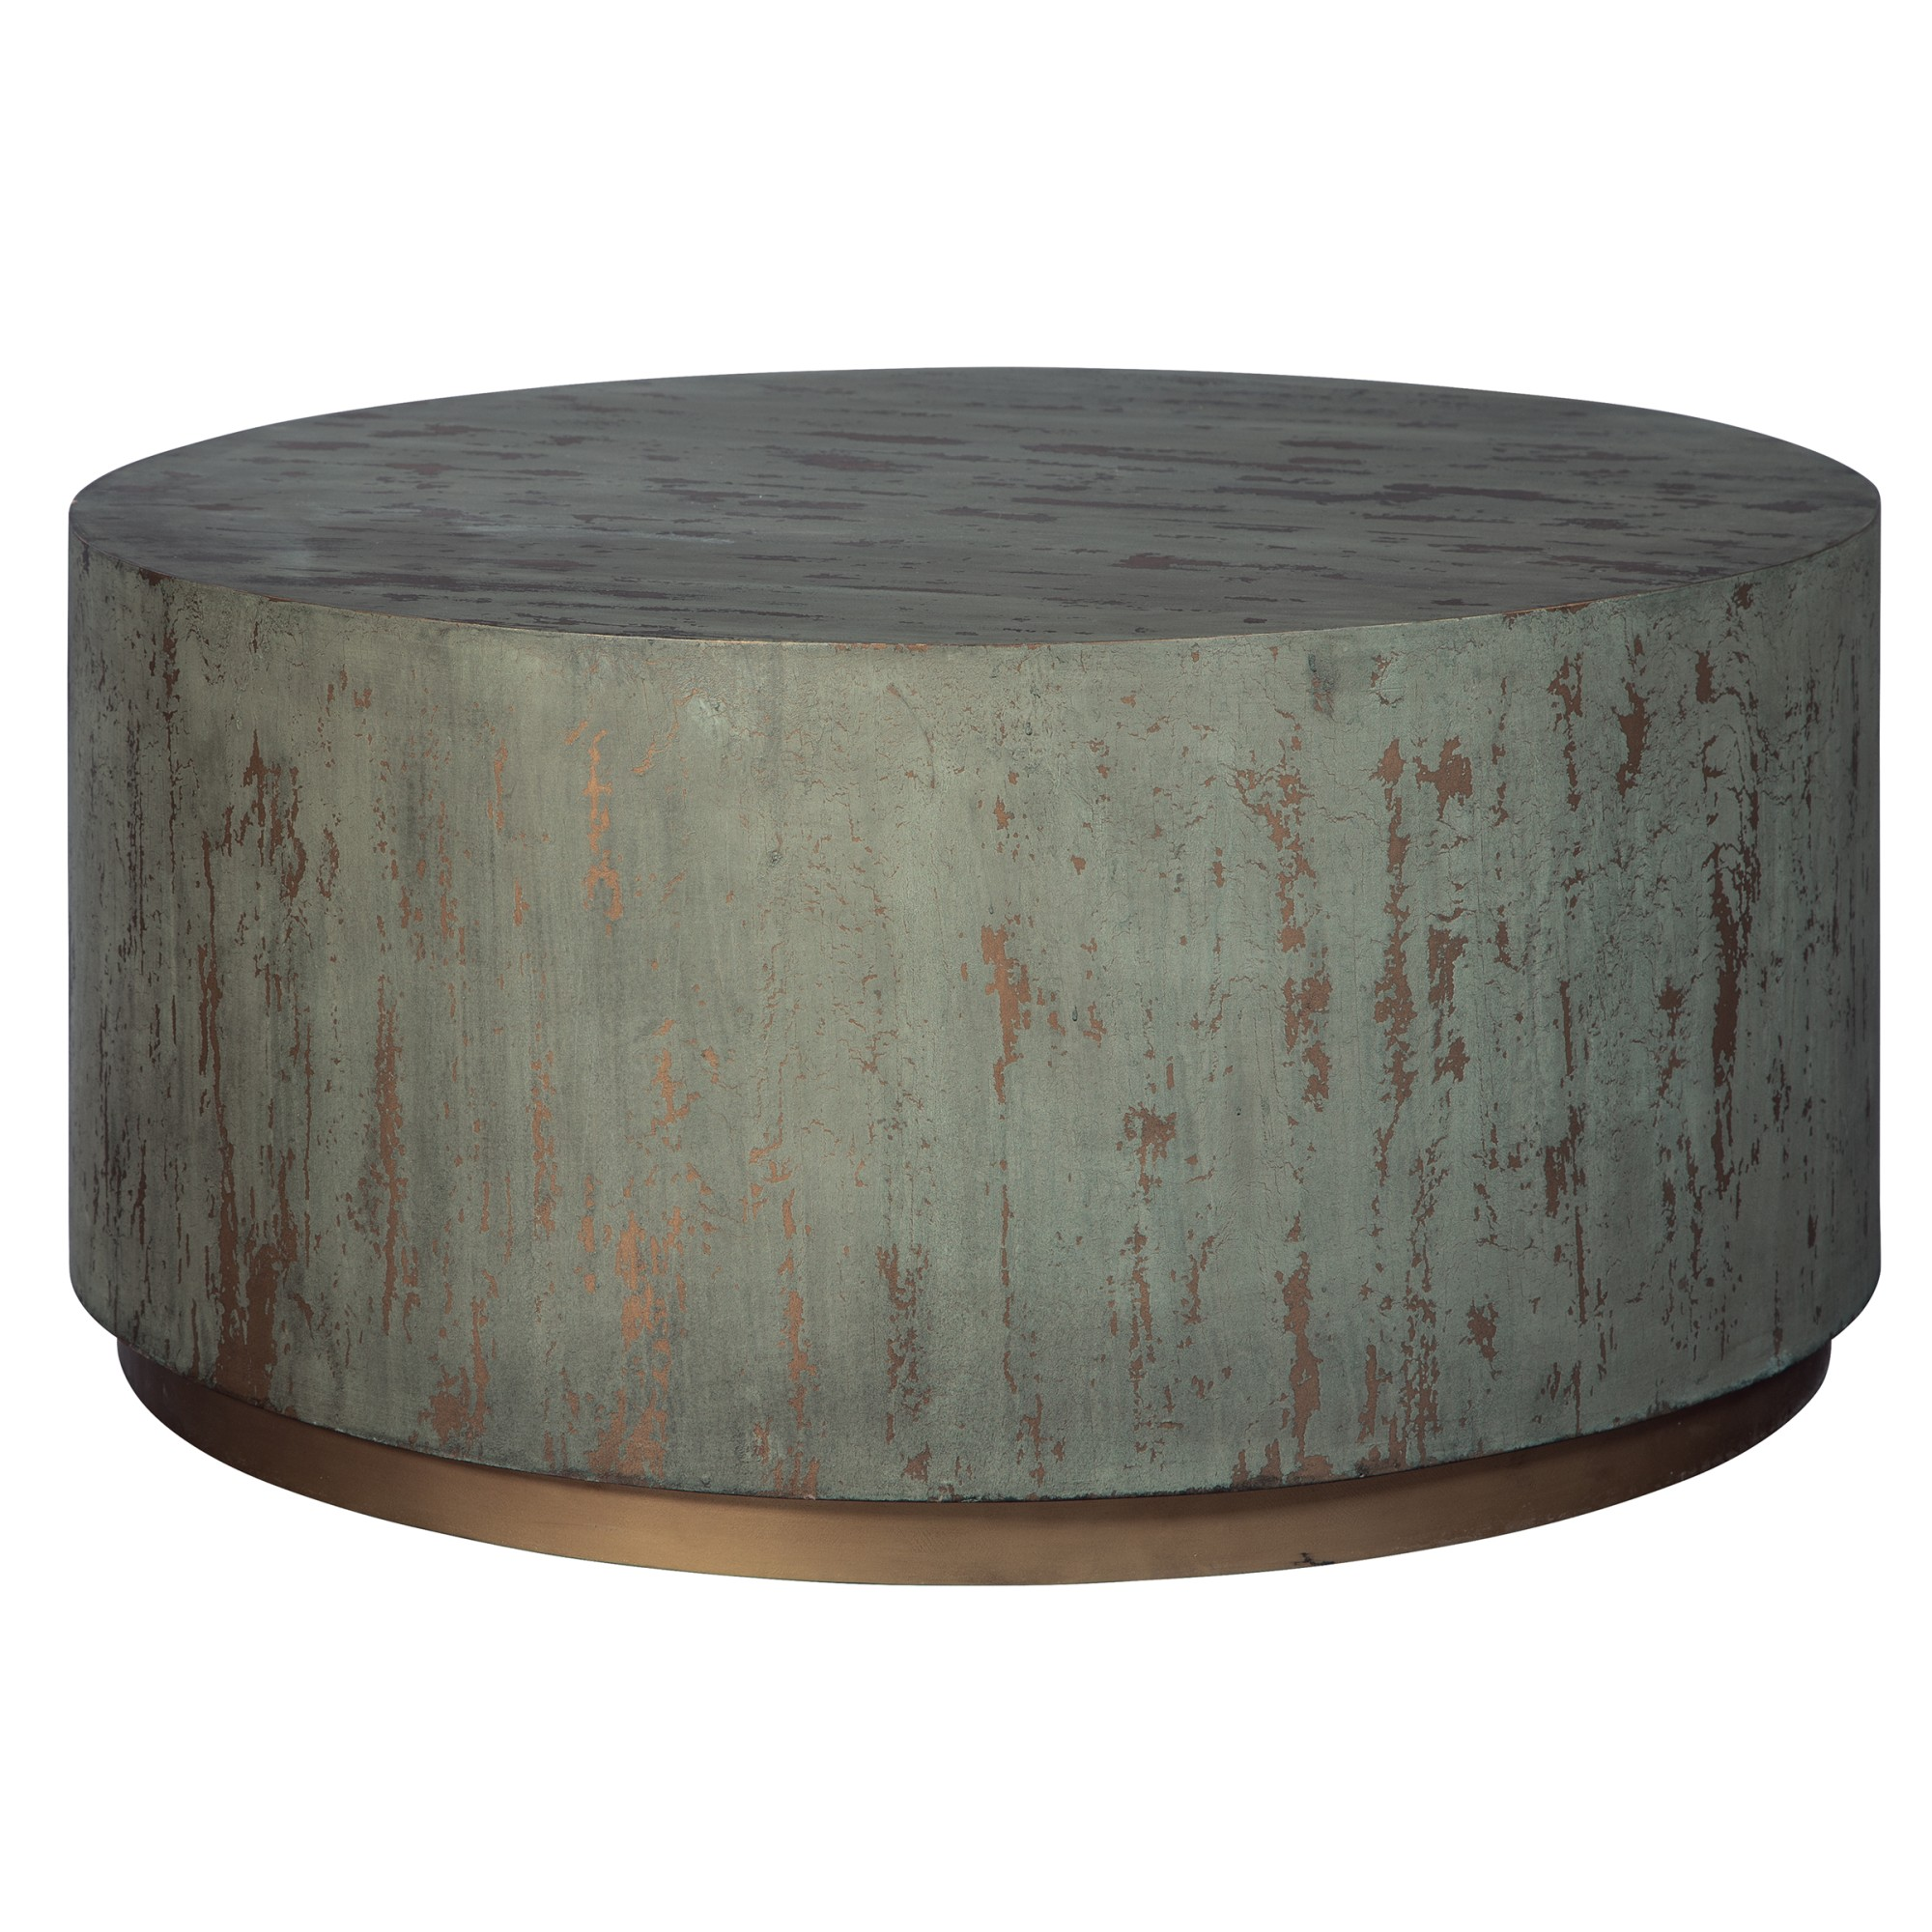 Image for 2-8387 Round Coffee Table from Hekman Official Website